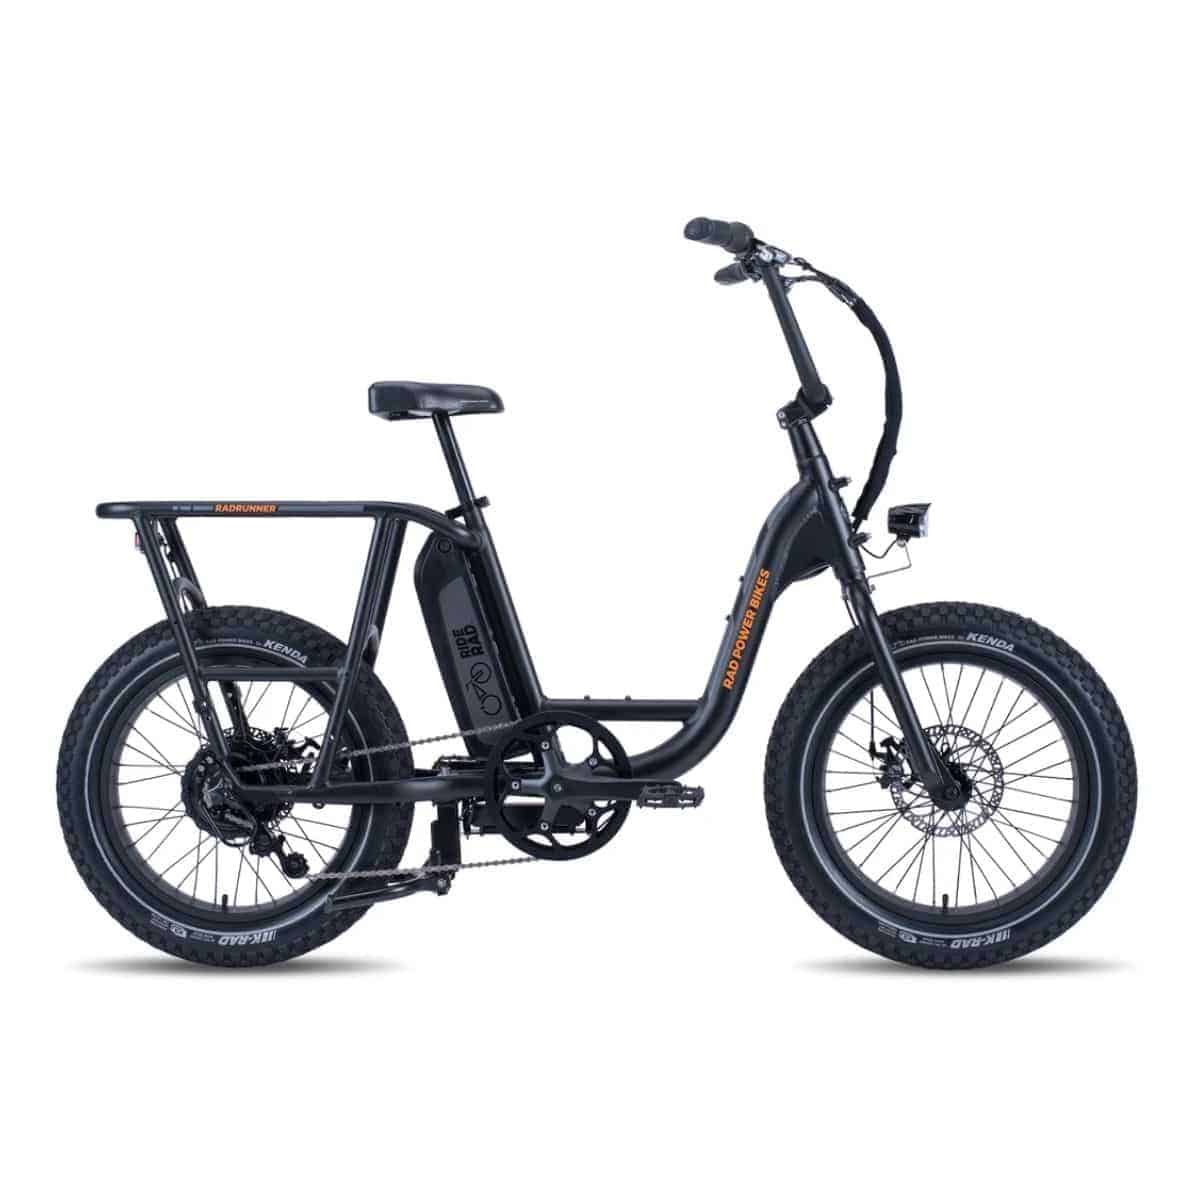 Side view of a RadRunner electric bike.